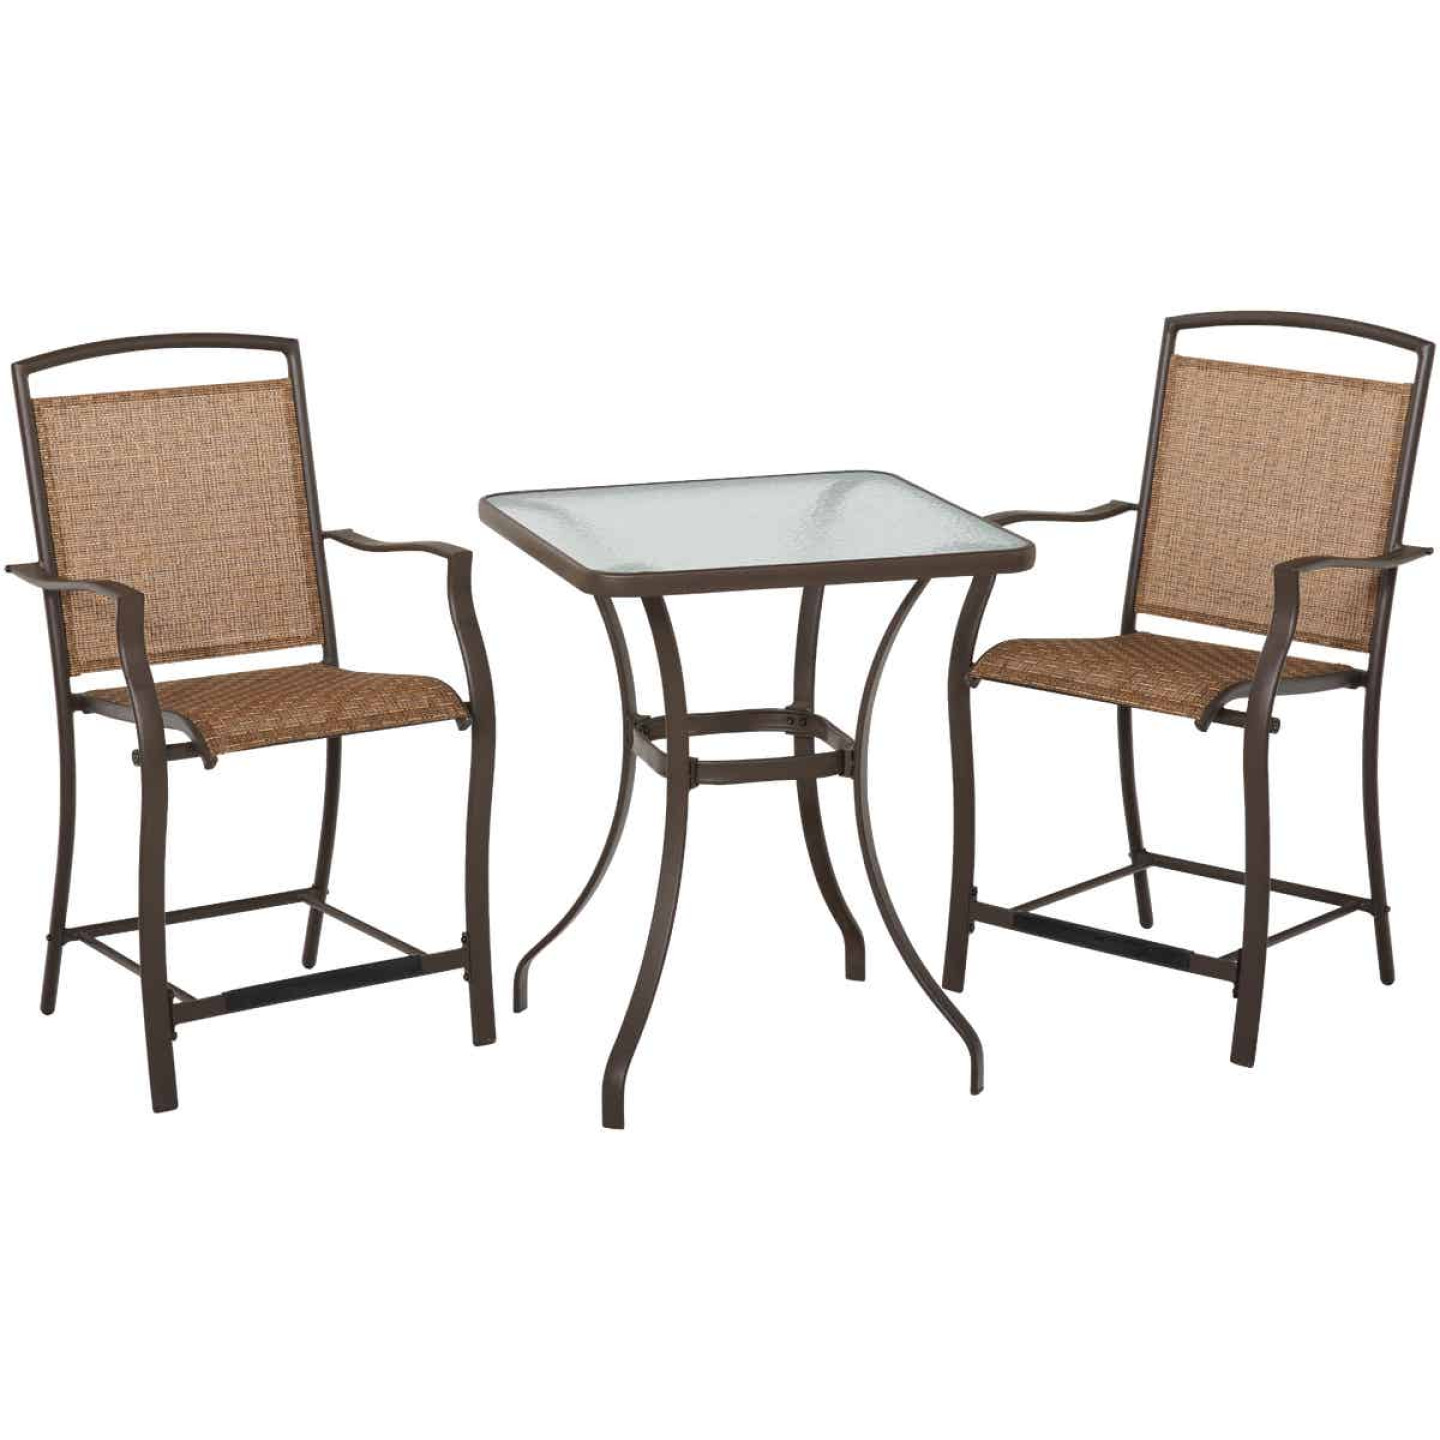 Outdoor Expressions 3-Piece Balcony Bistro Set Image 1